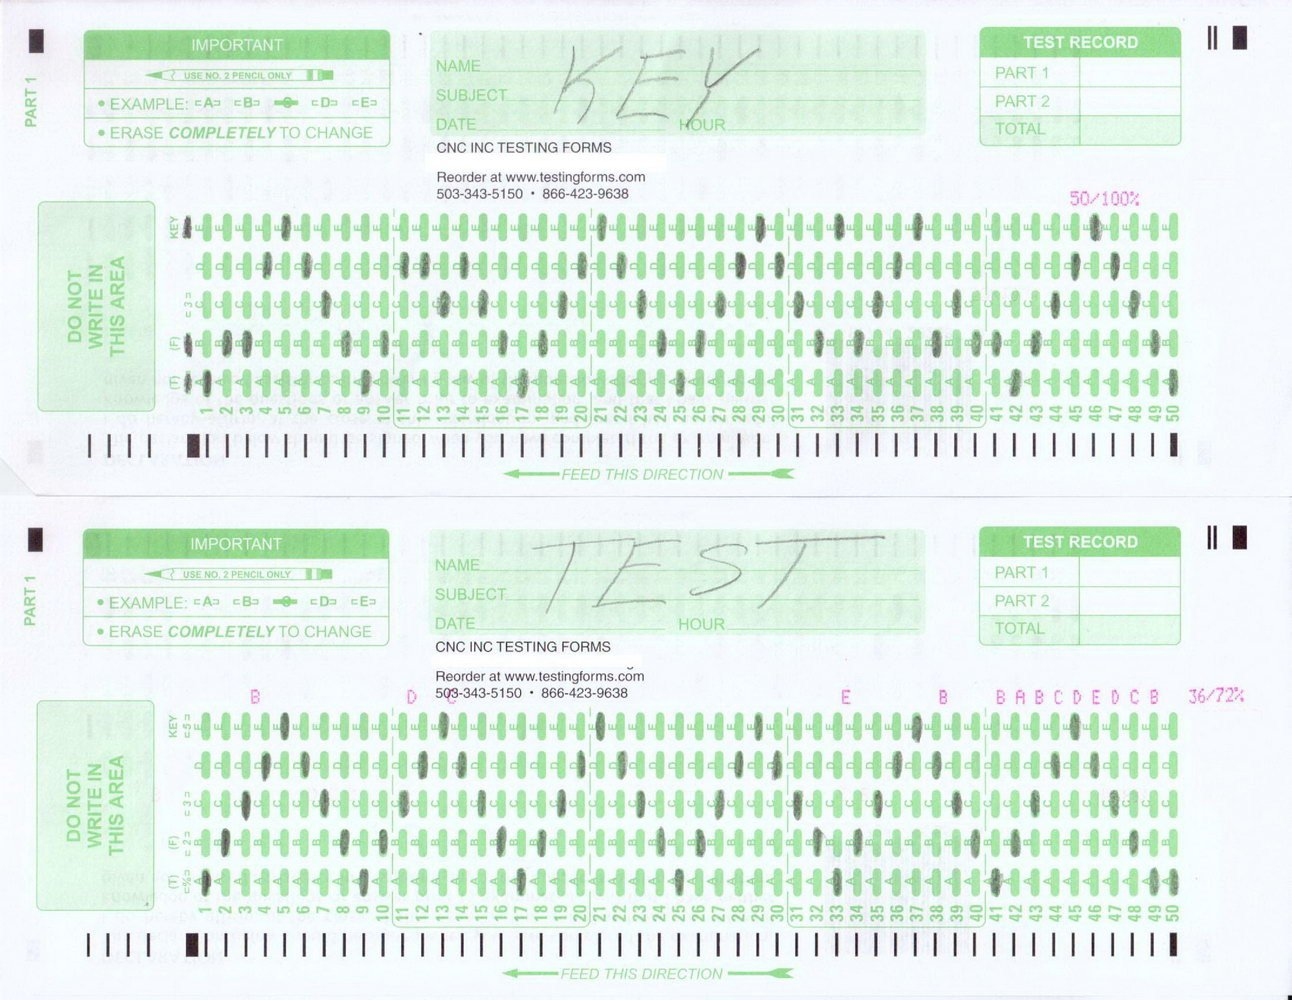 Office Depot Scantron 882 Scantron form 882 E Fice Depot forms 7201